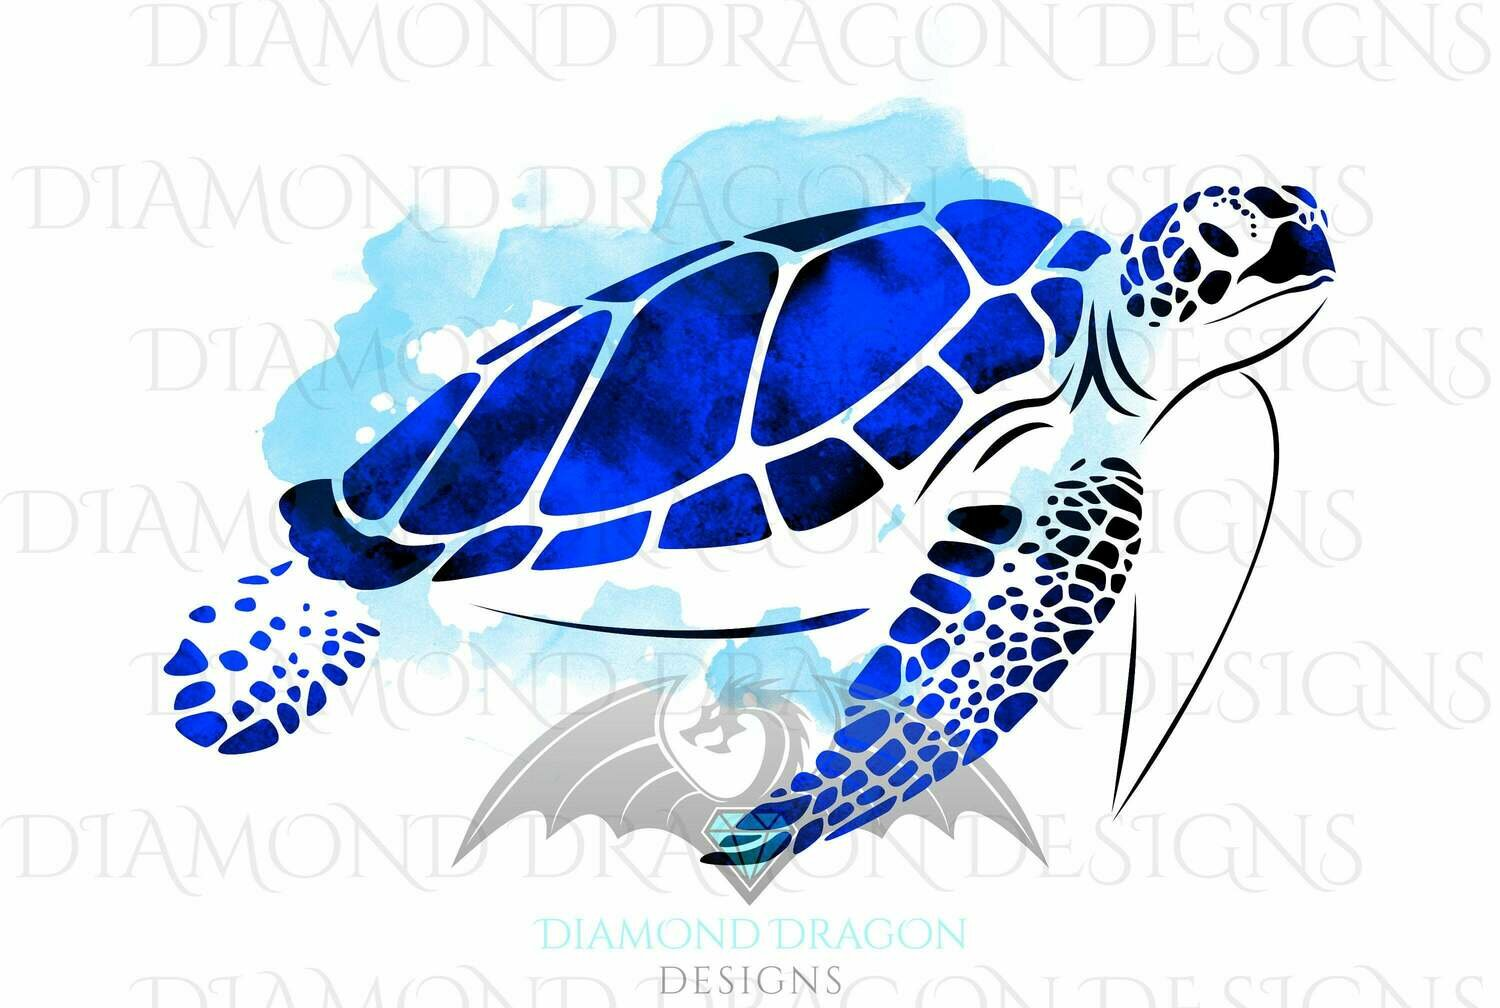 Turtles - Sea Turtle, Watercolor Sea Turtle, Sapphire Blue Sea Turtle, Digital Image